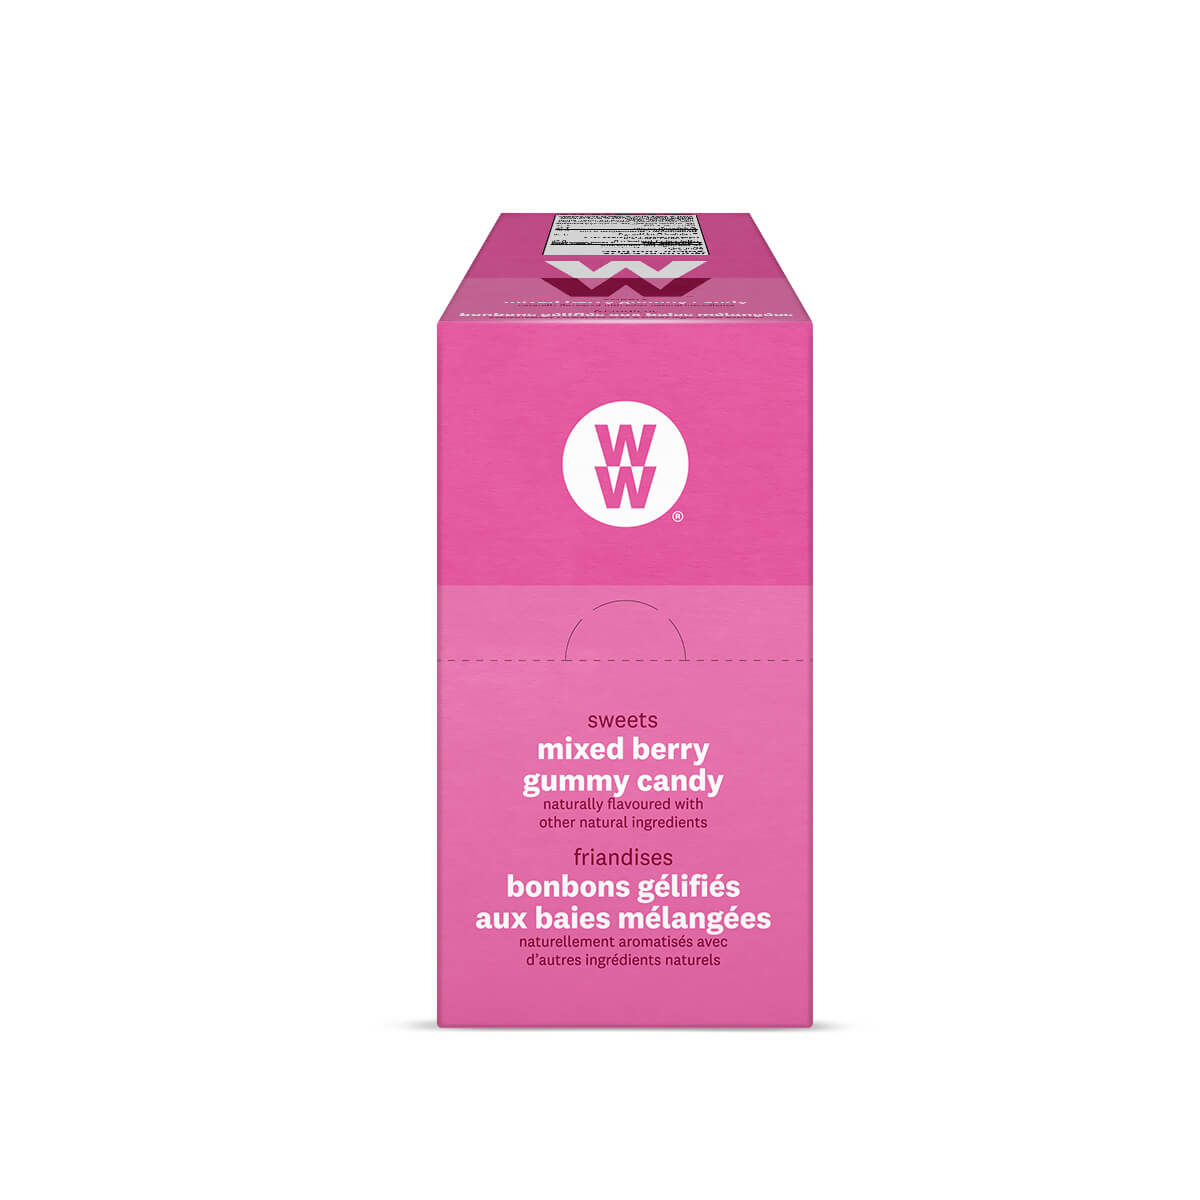 WW Sweets Mixed Berry (Box of 12) - side of the box